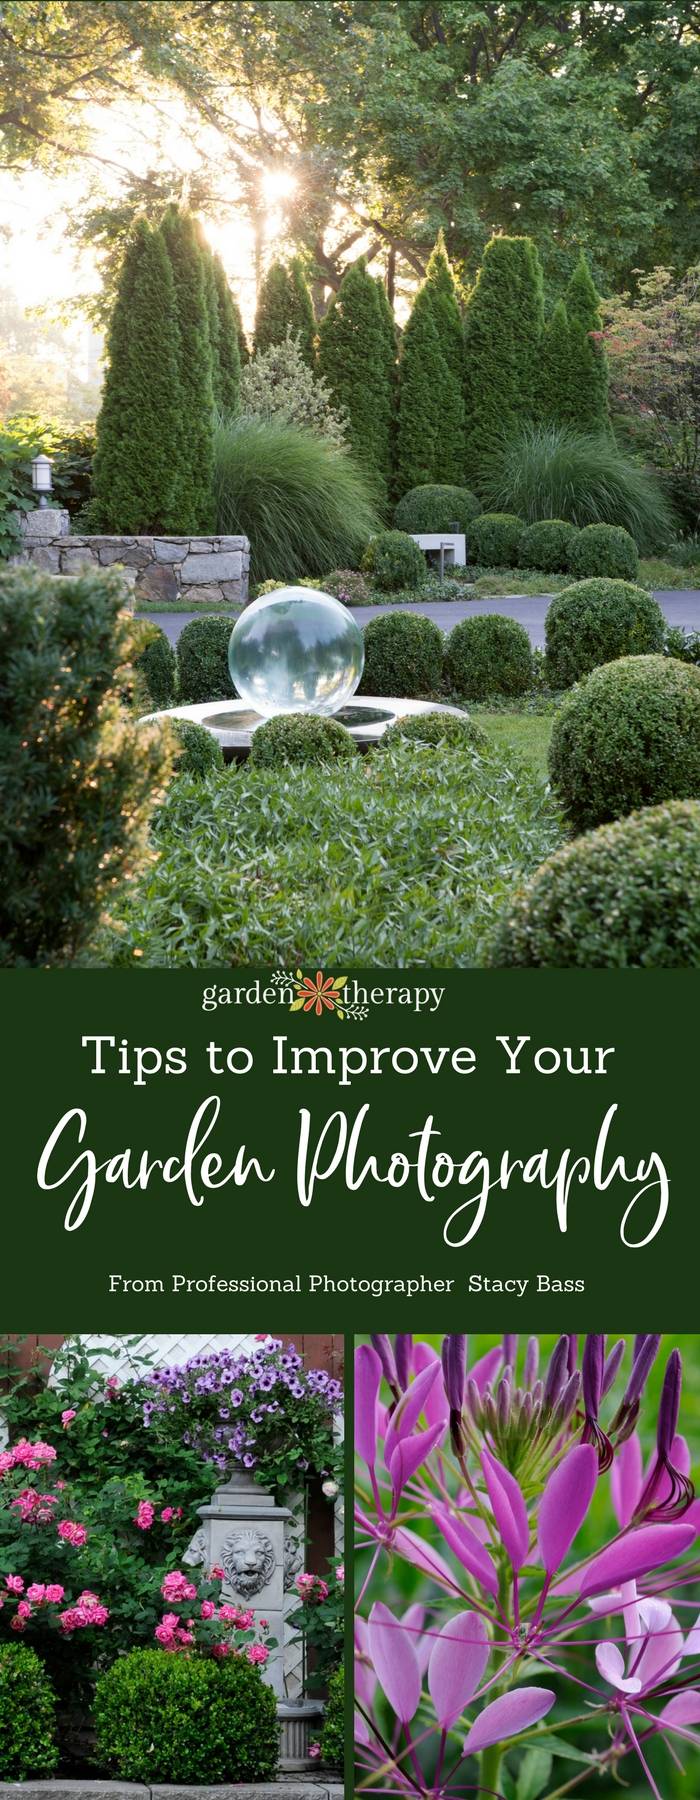 With a few simple tips, you can transform your garden photography from ordinary to extraordinary. #gardentherapy #photography #nature